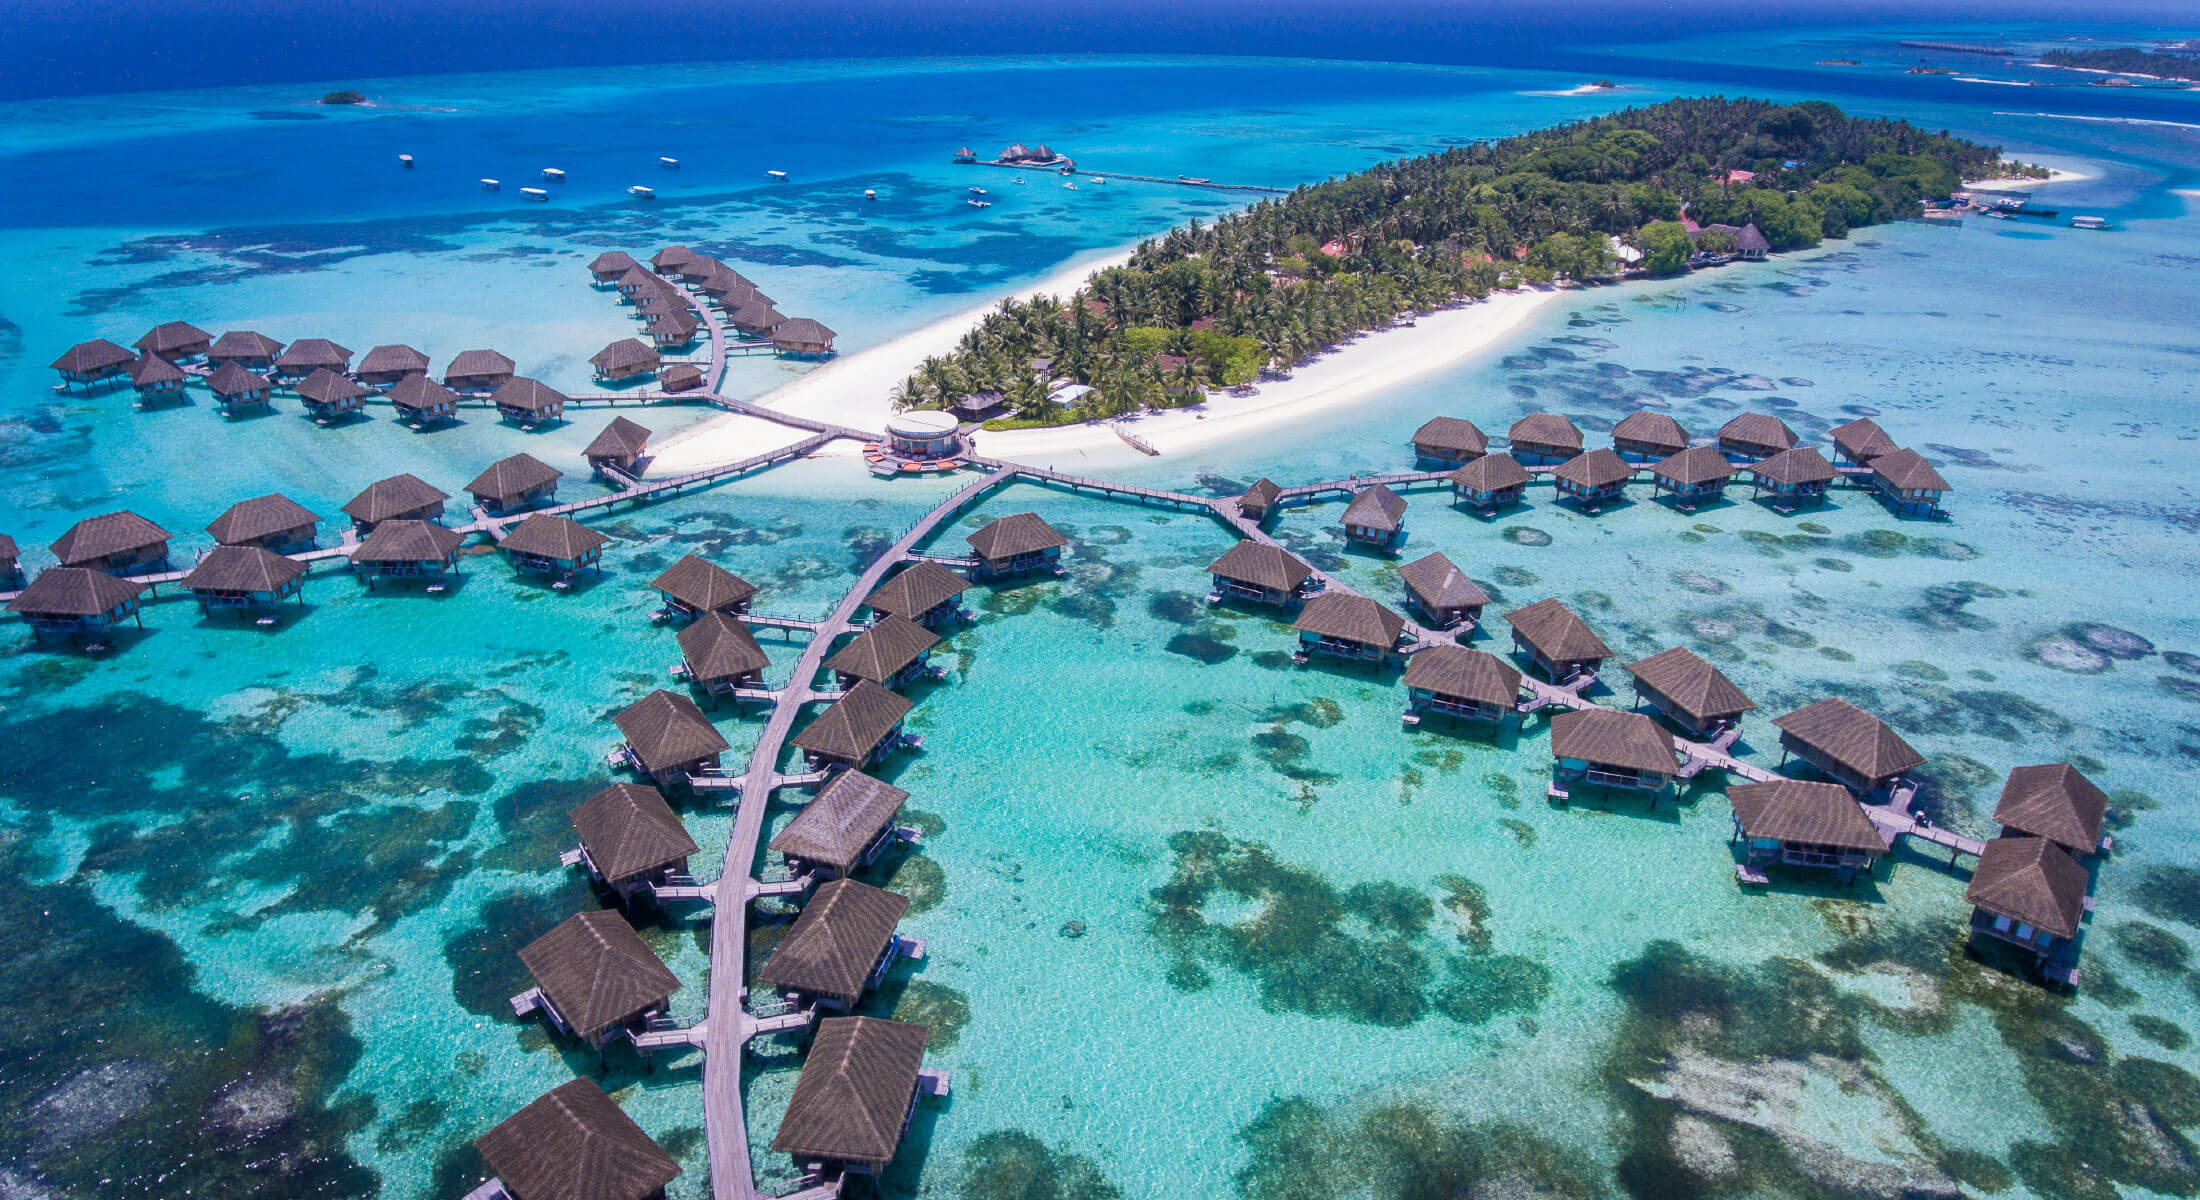 Overwater villas on an island resort in the Indian Ocean